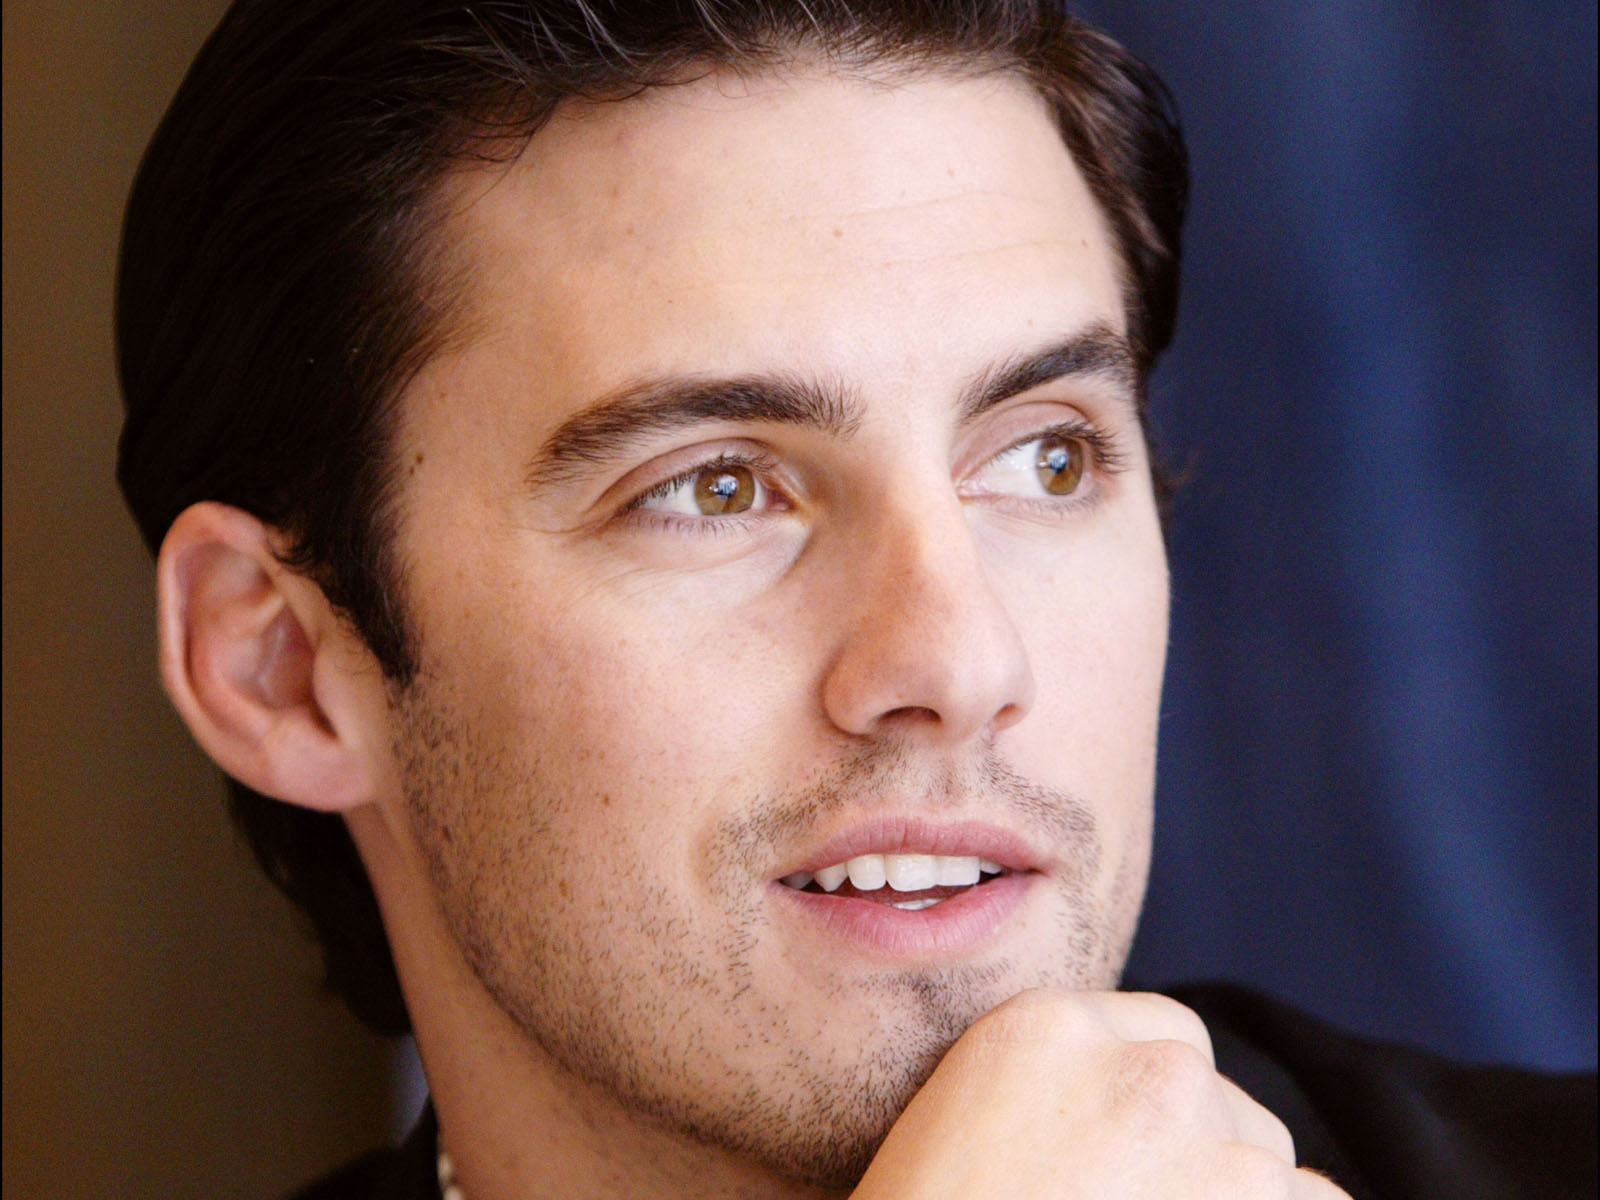 Apologise, but, Milo ventimiglia nude naked sorry, that